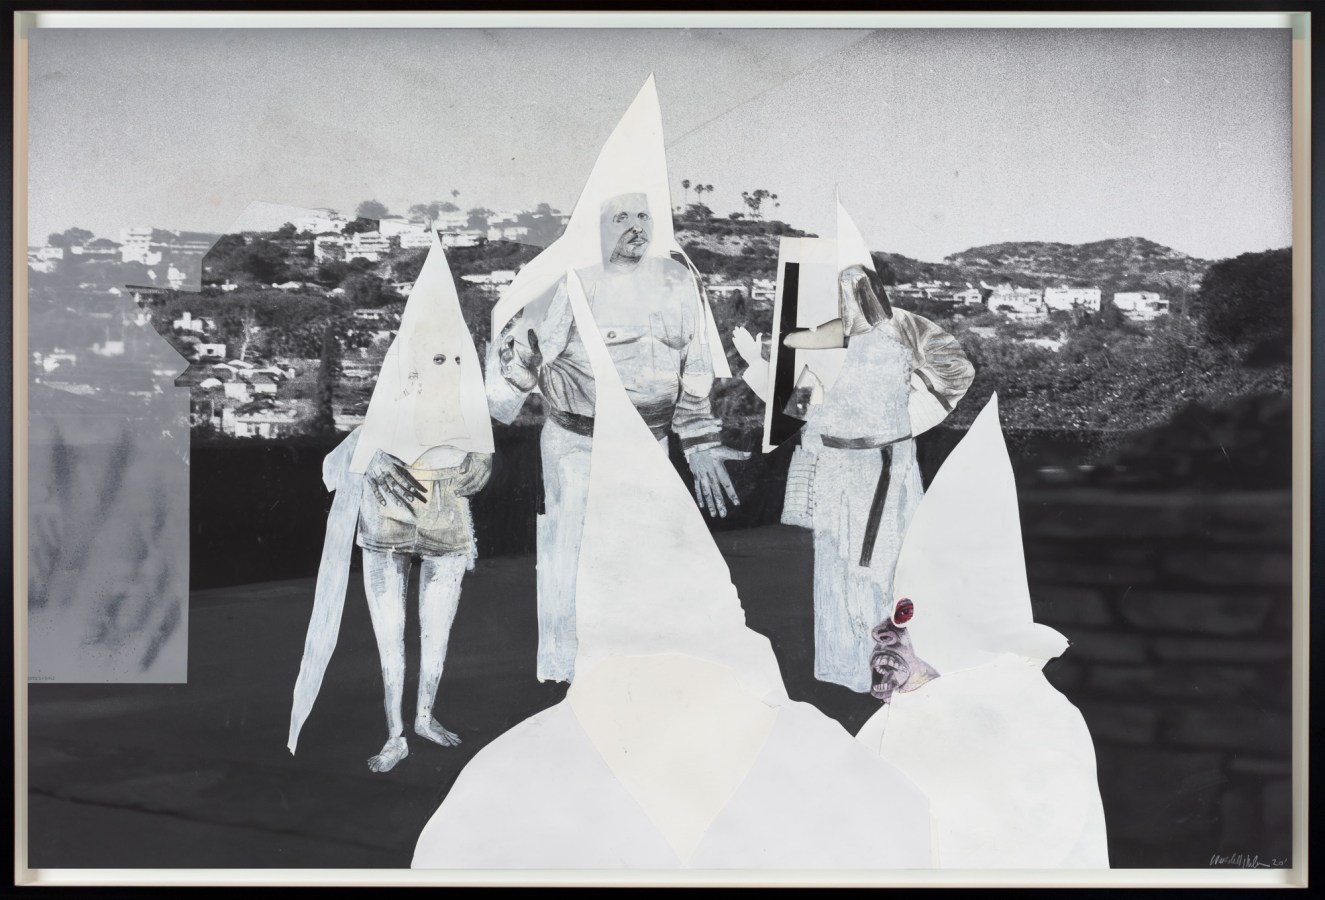 A black, white, and gray collage of five Klansmen in a circle. The background is the LA hills.